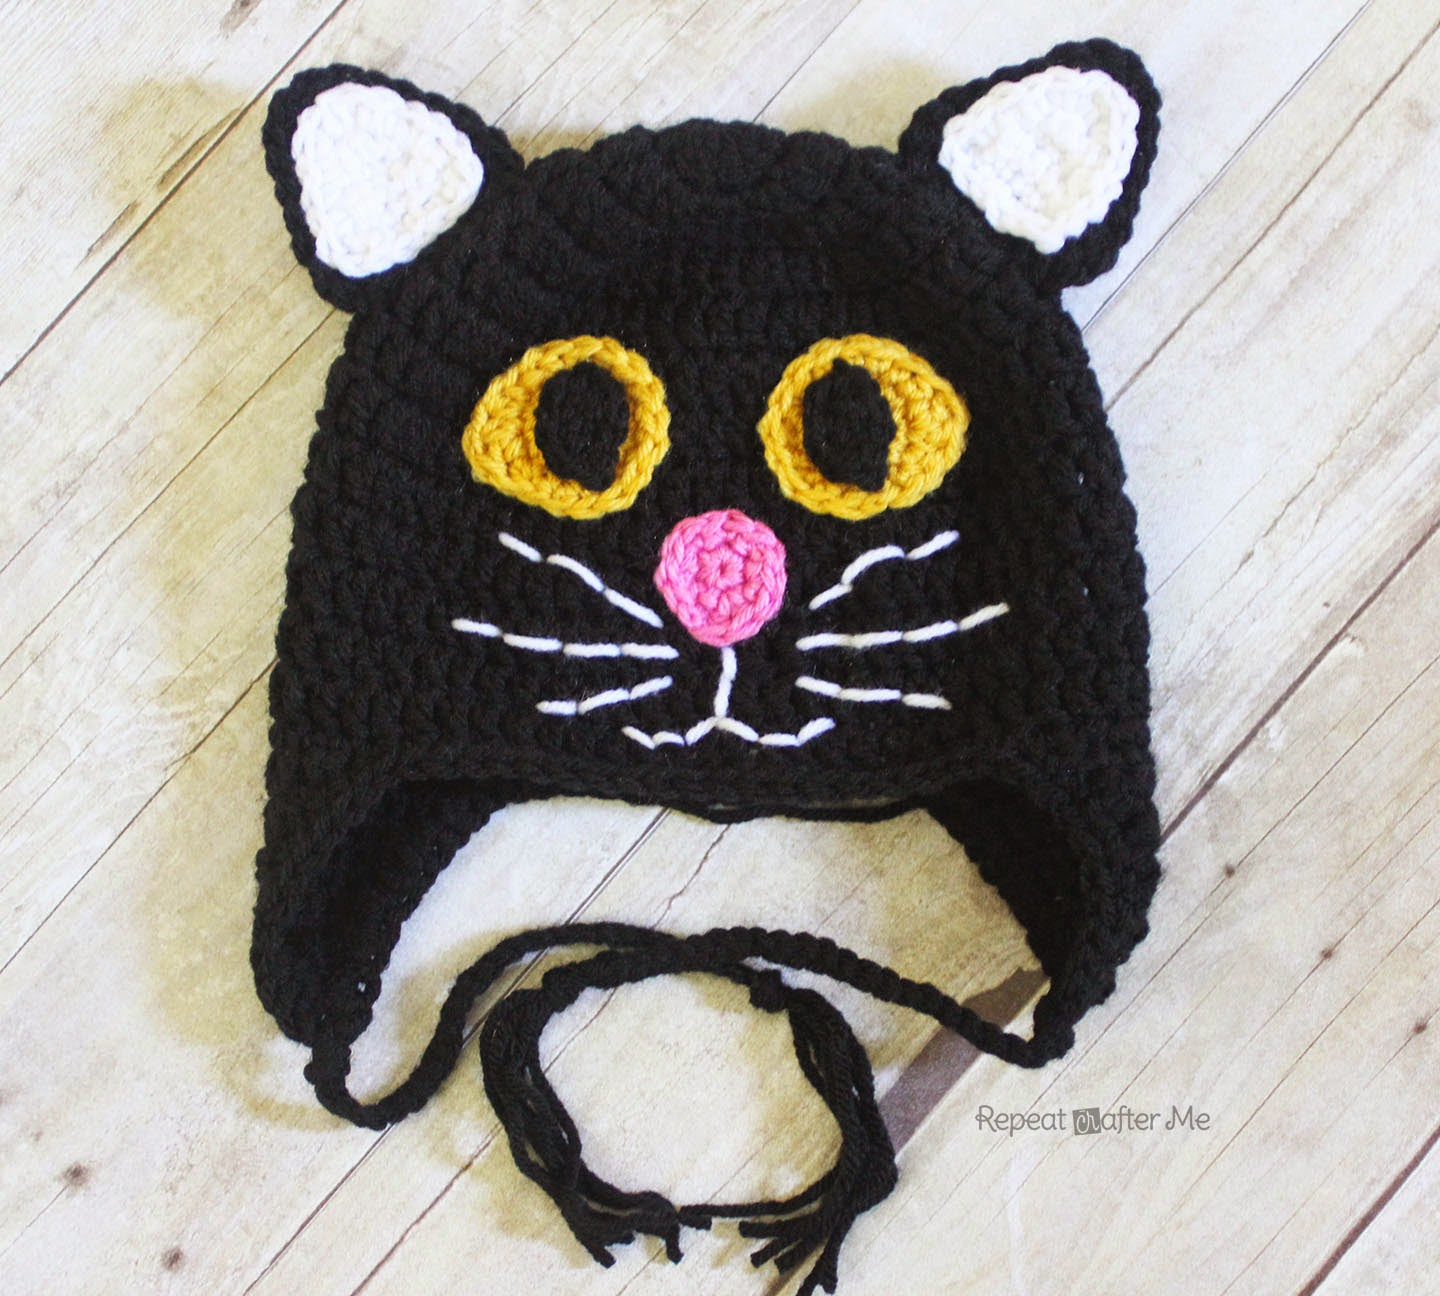 Newborn Crochet Cat Hat Pattern : Crochet Black Cat Hat by Repeat Crafter Me - Crochet ...